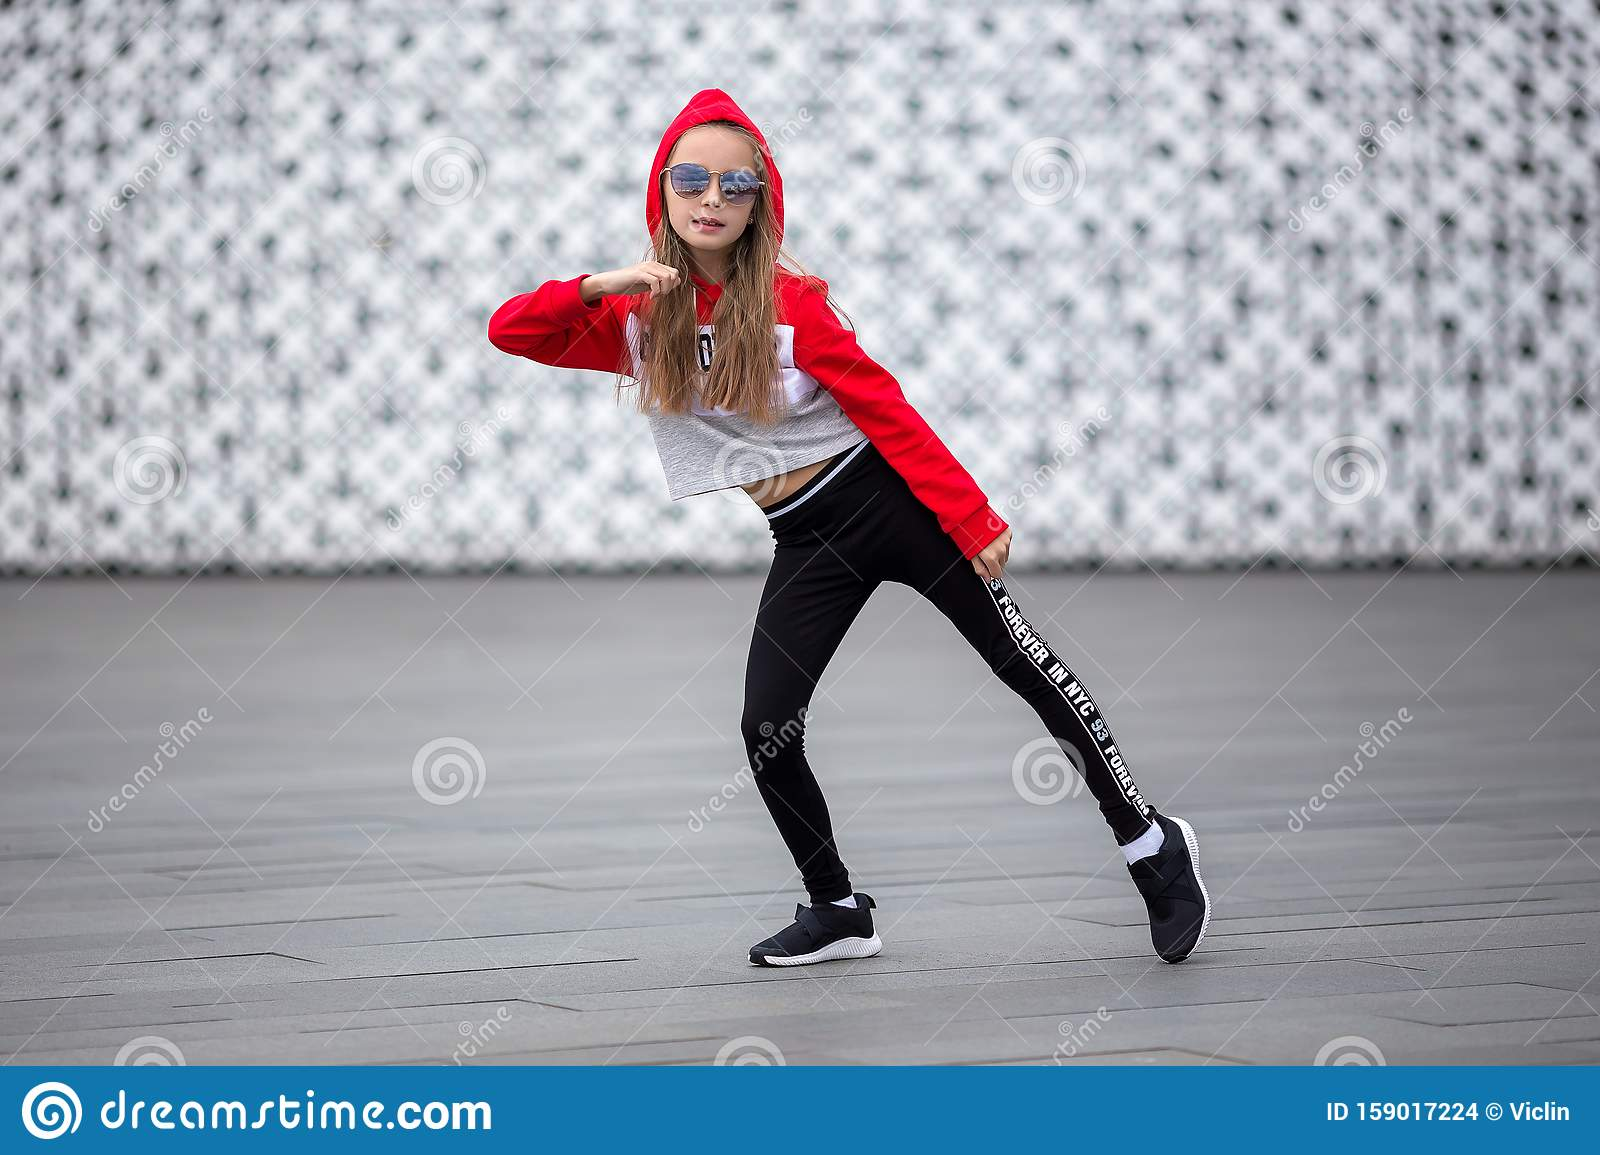 Little Girl In A Tracksuit Is Dancing Modern Dance On The Street Young Urban Hip Hop Dancer Stock Photo Image Of Girl Dancing 159017224